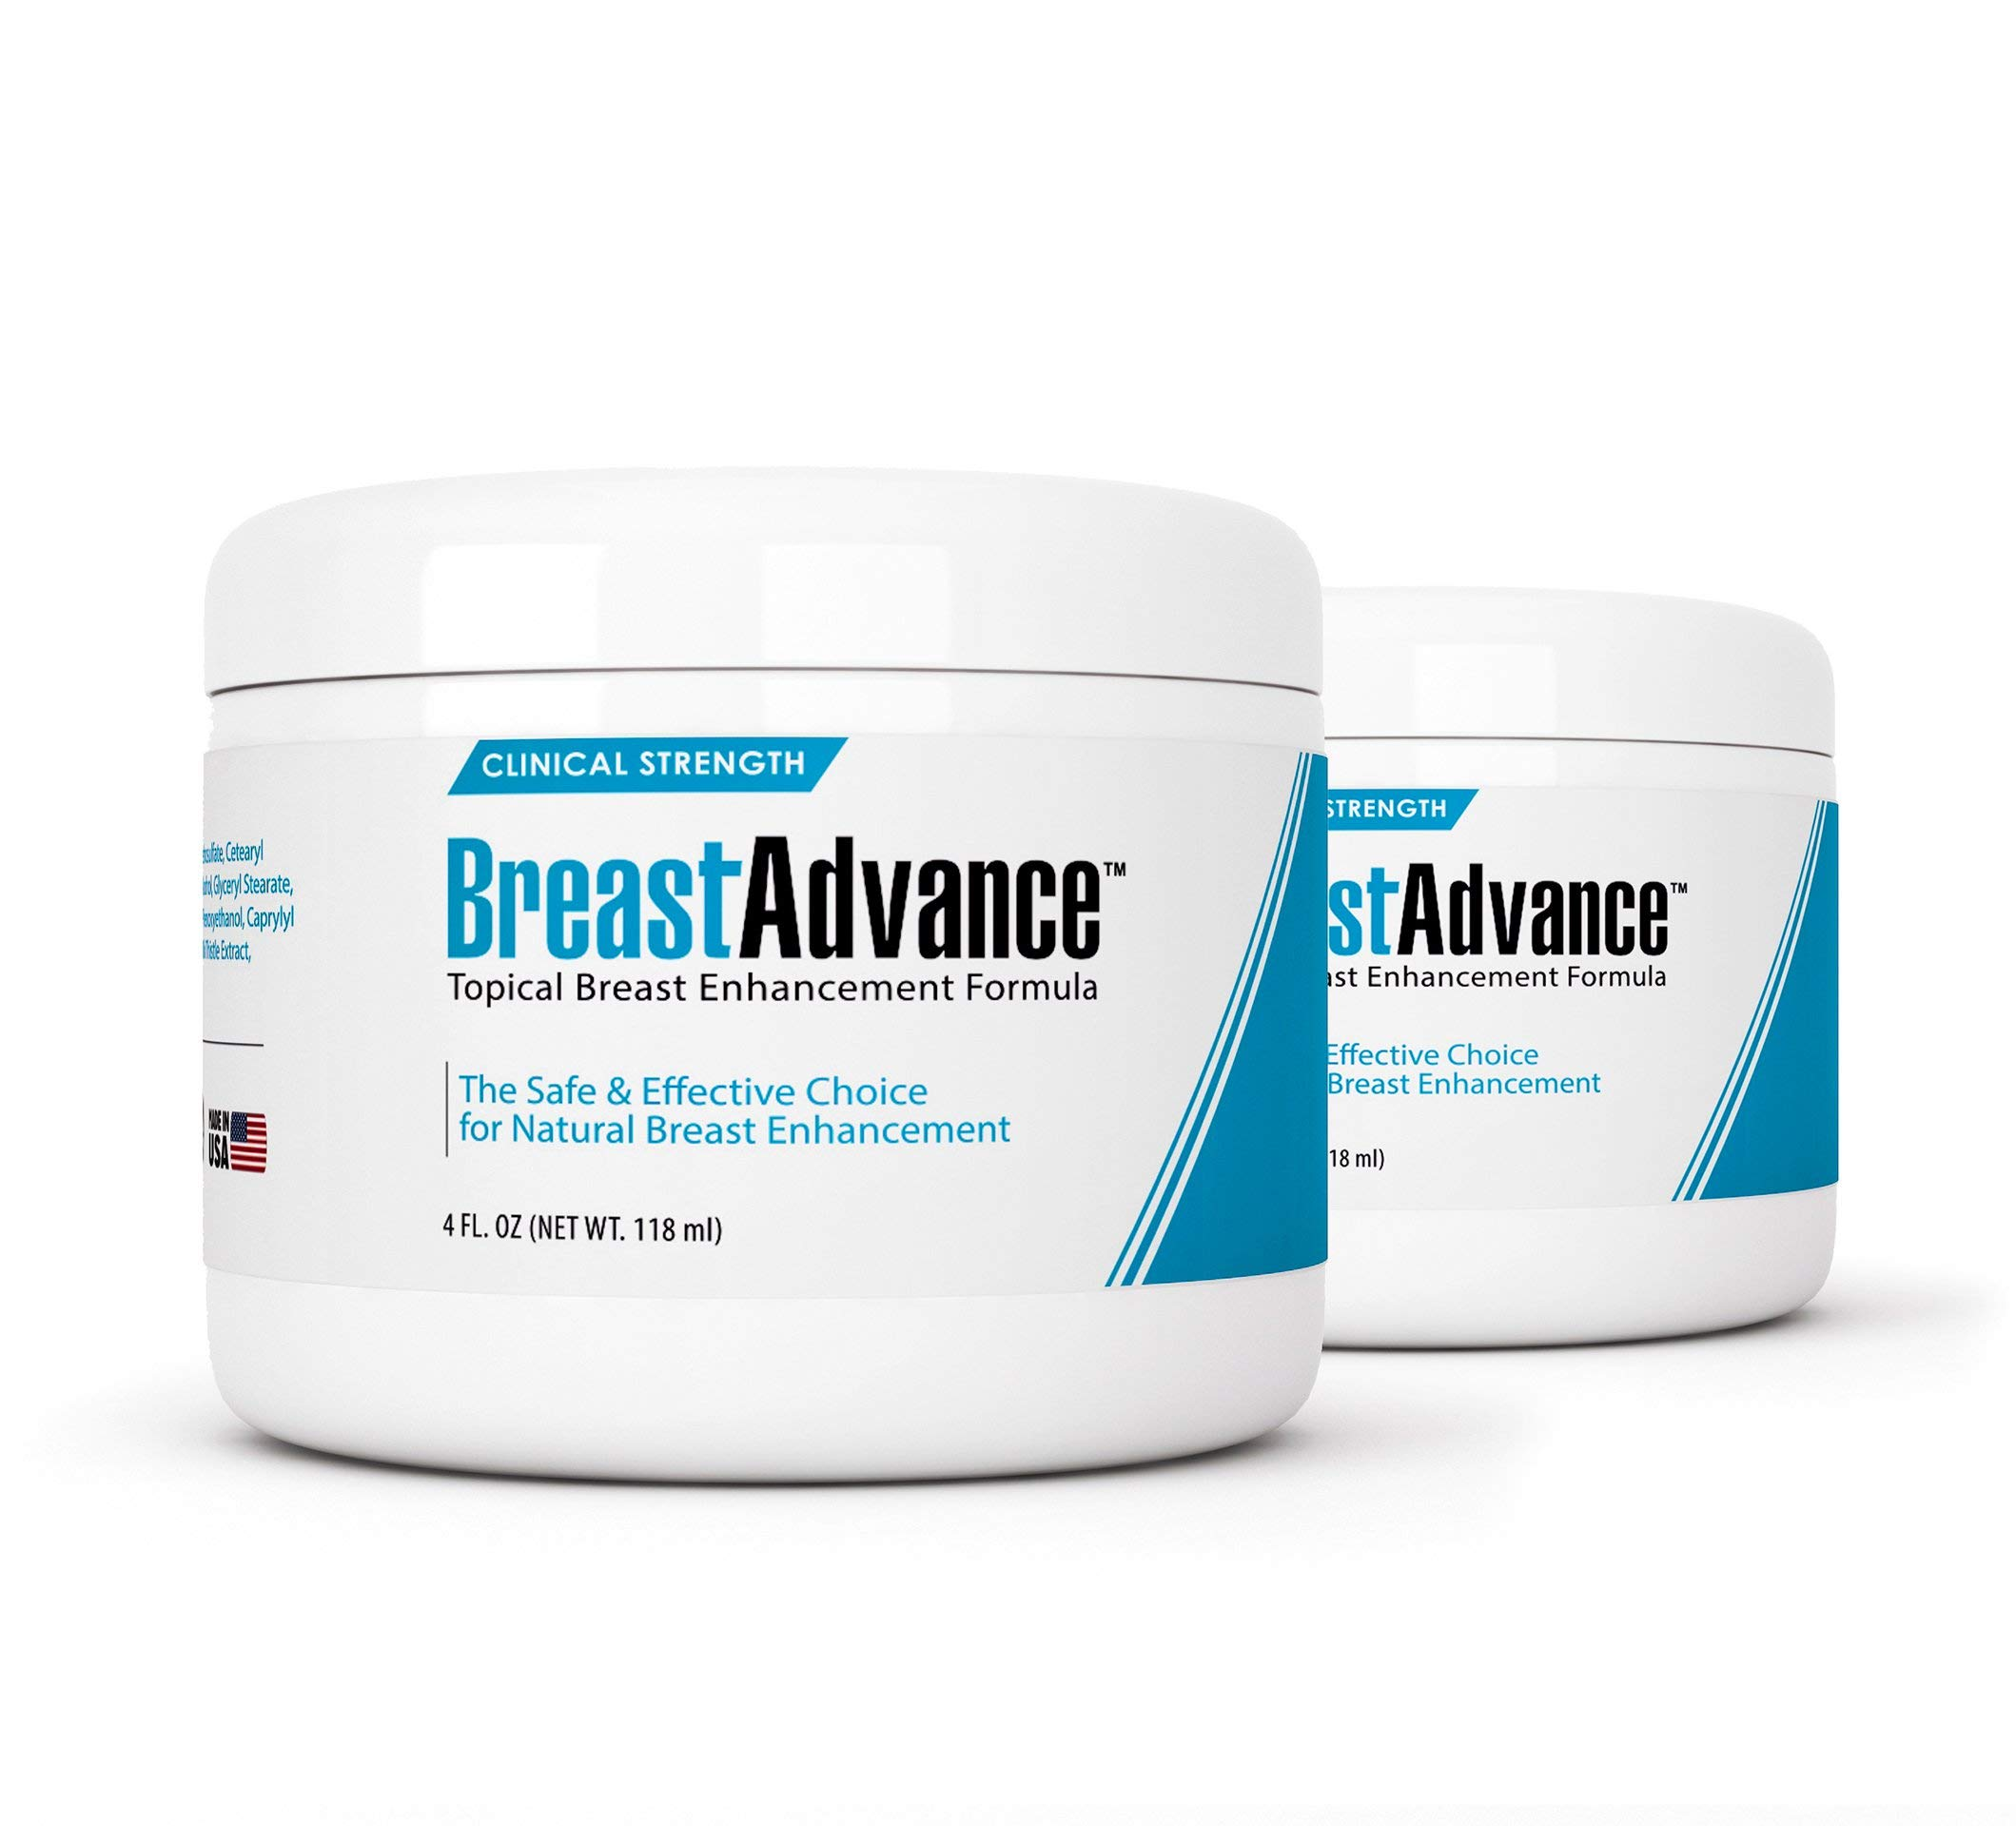 Breast Advance (2 Jars) - Premium, Topical Breast Augmentation Formula - The Safe, Natural Choice for Bust Enhancement, Enlargement/Increasing, Enlarging Cup Size